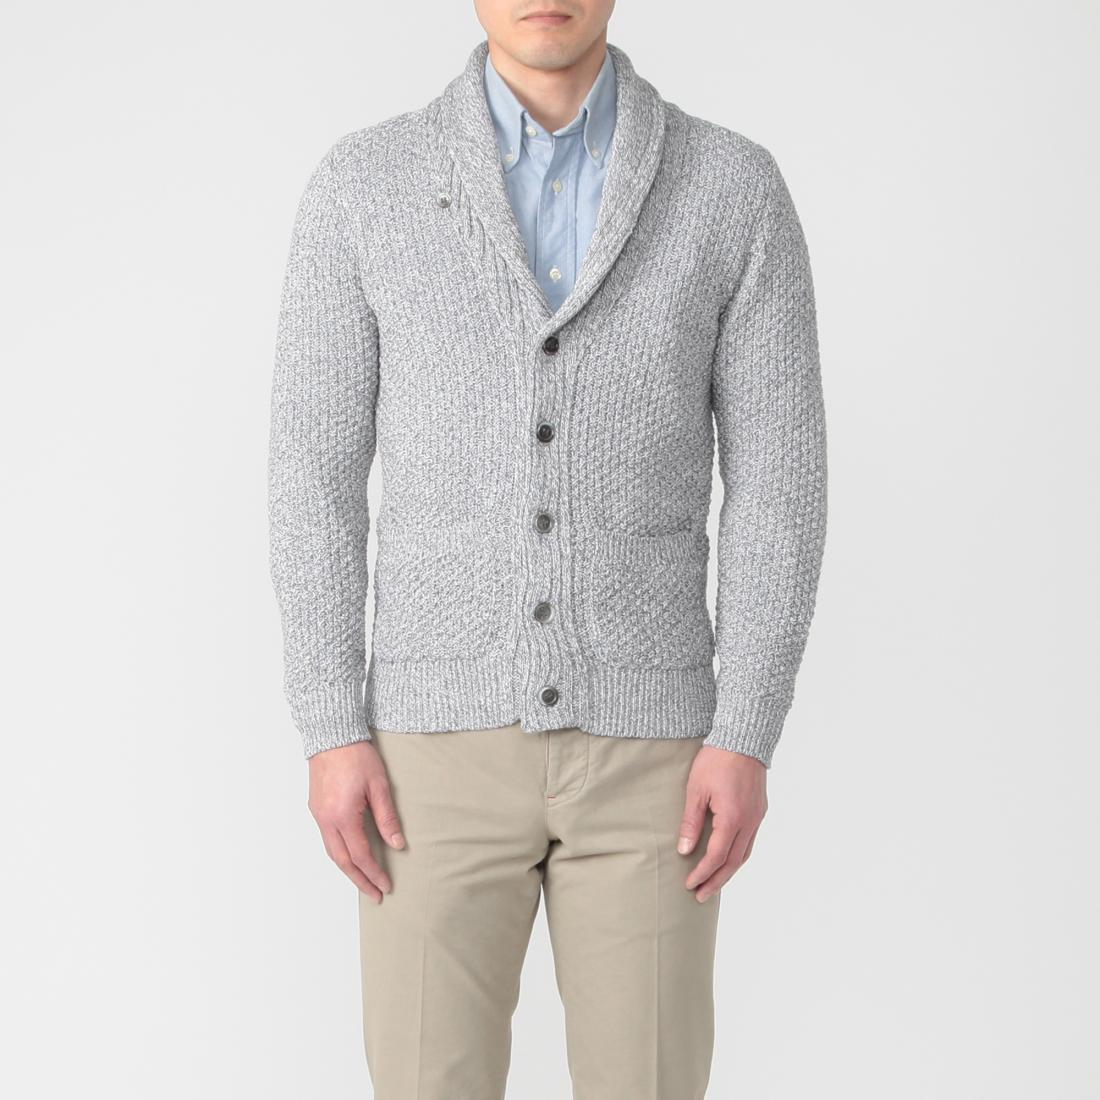 Cotton Shawl Collar Cardigan 1217046: Grey